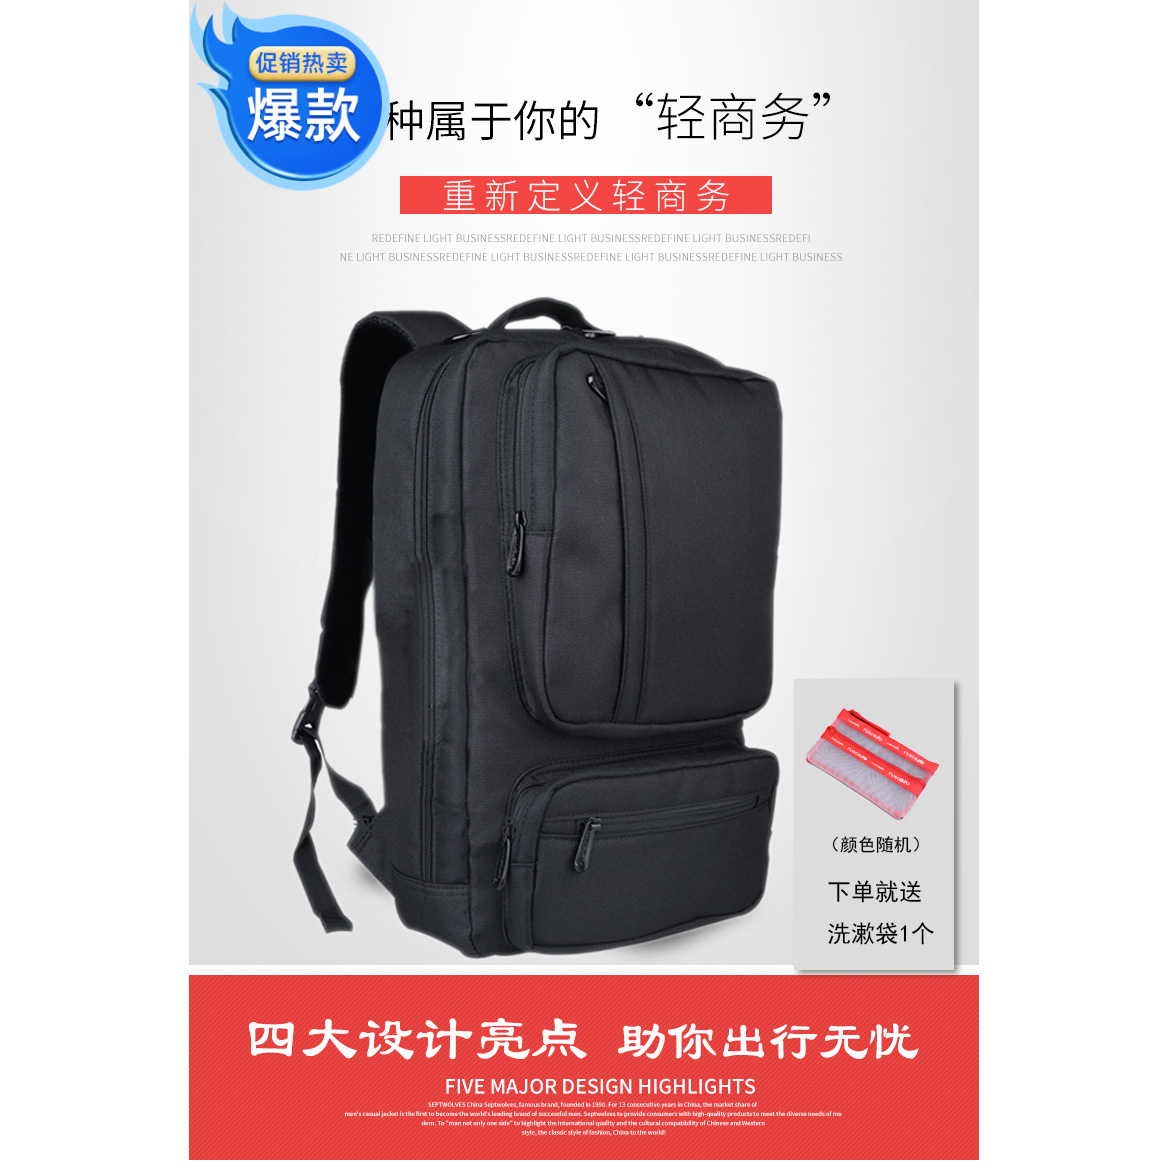 USB ready to charge mens and womens backpacks business leisure travel business multi purpose large capacity laptop bag